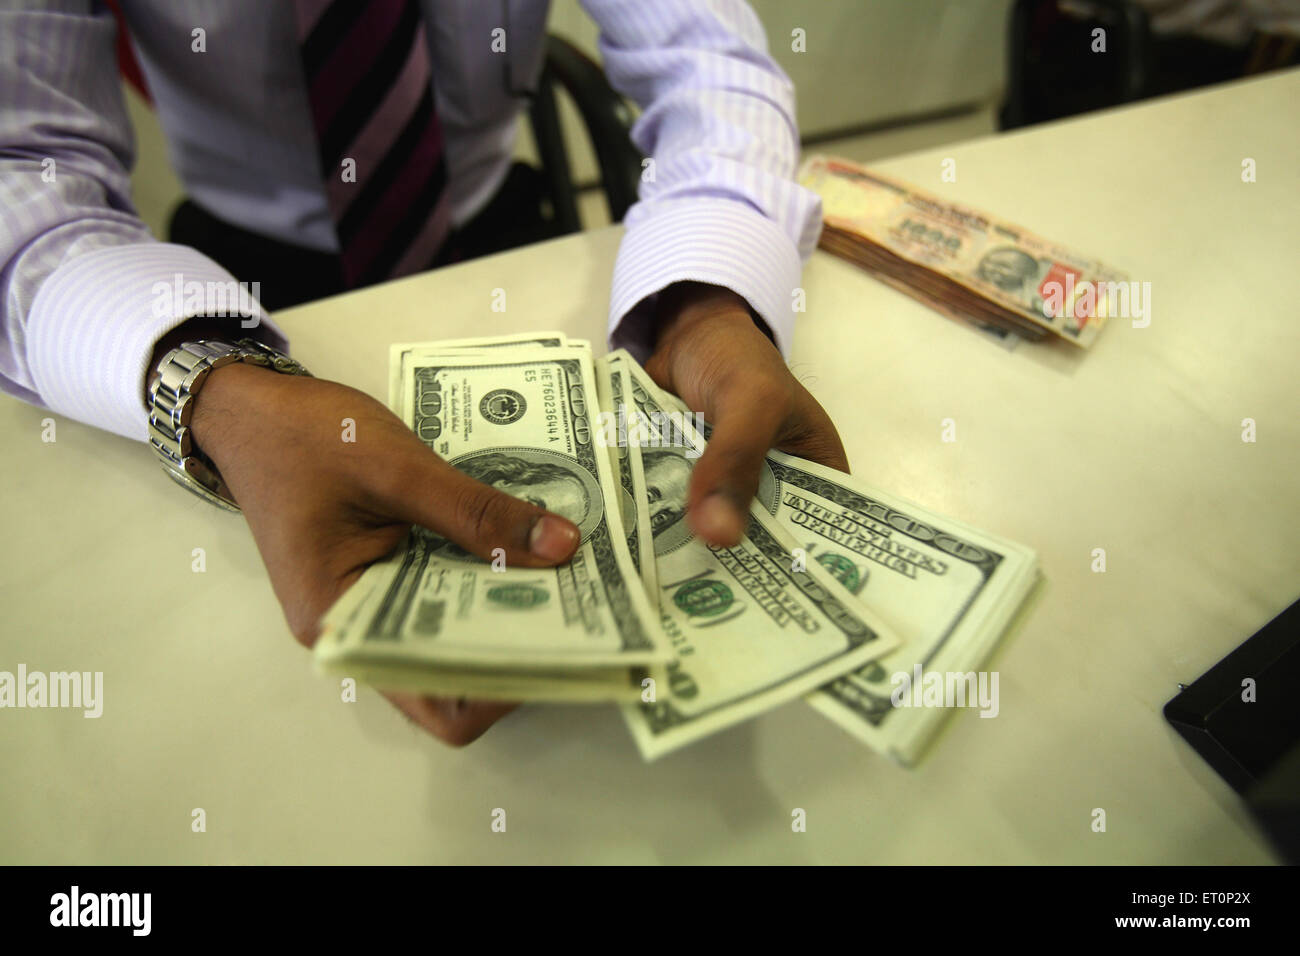 Man showing us dollars - Stock Image